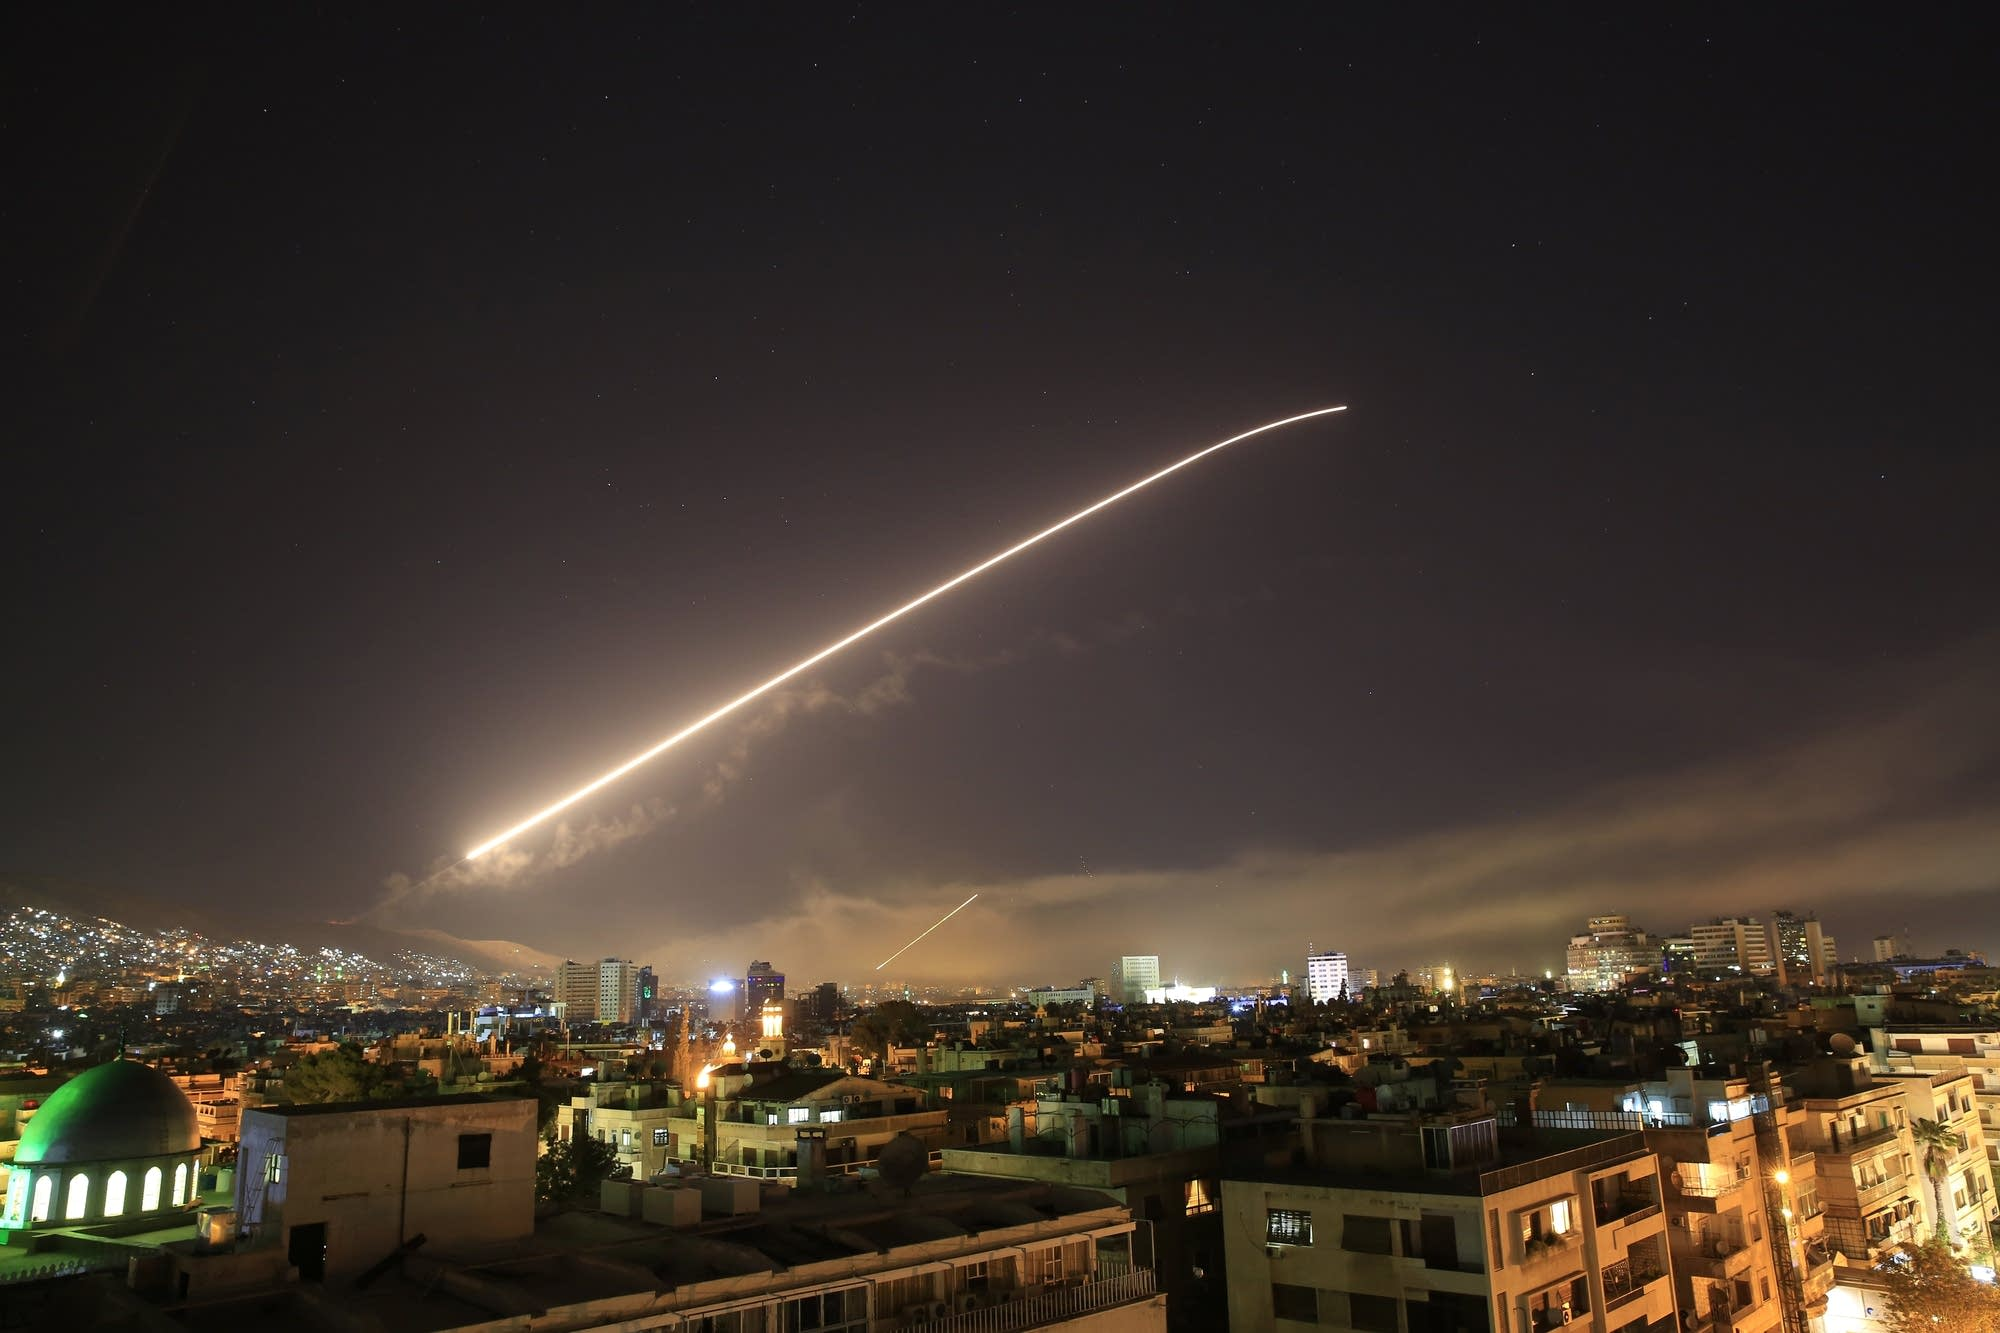 Damascus sky lights up with surface to air missile fire.